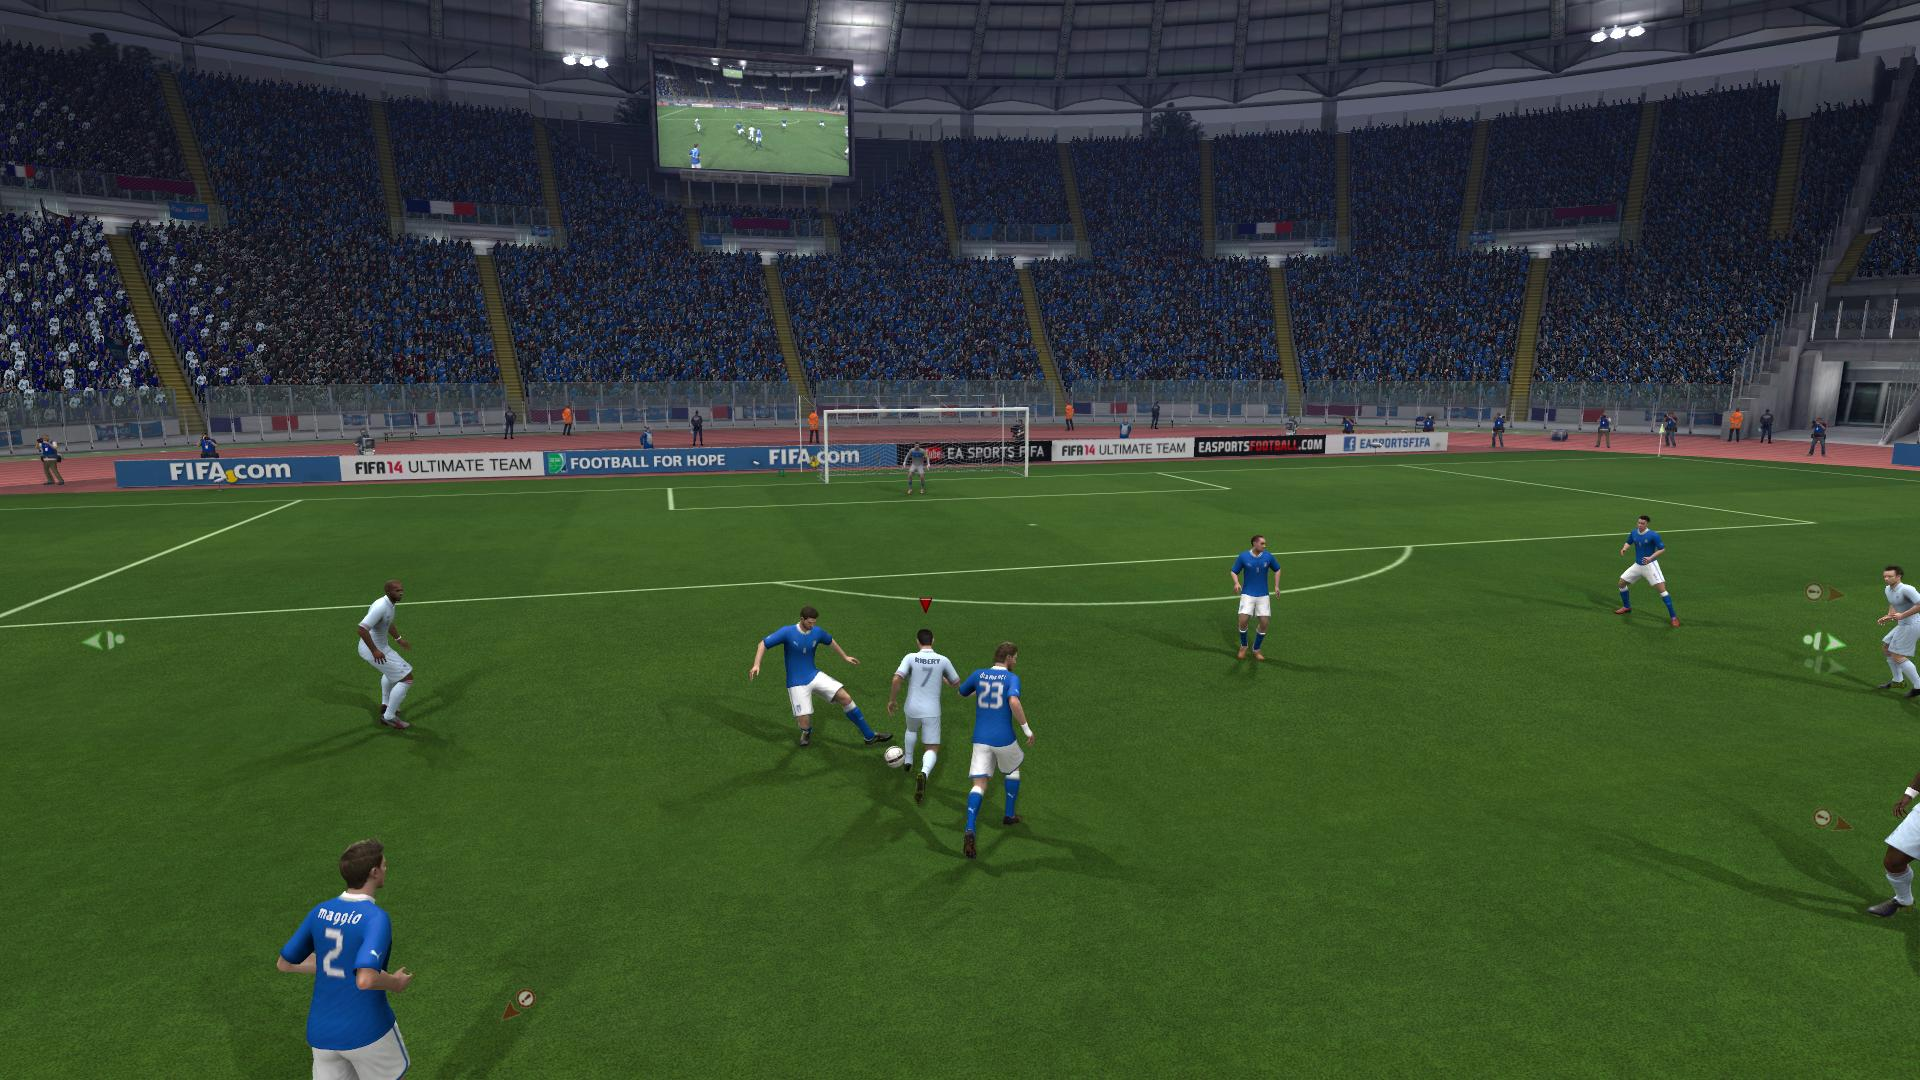 Fifa14 screenshot PC 120